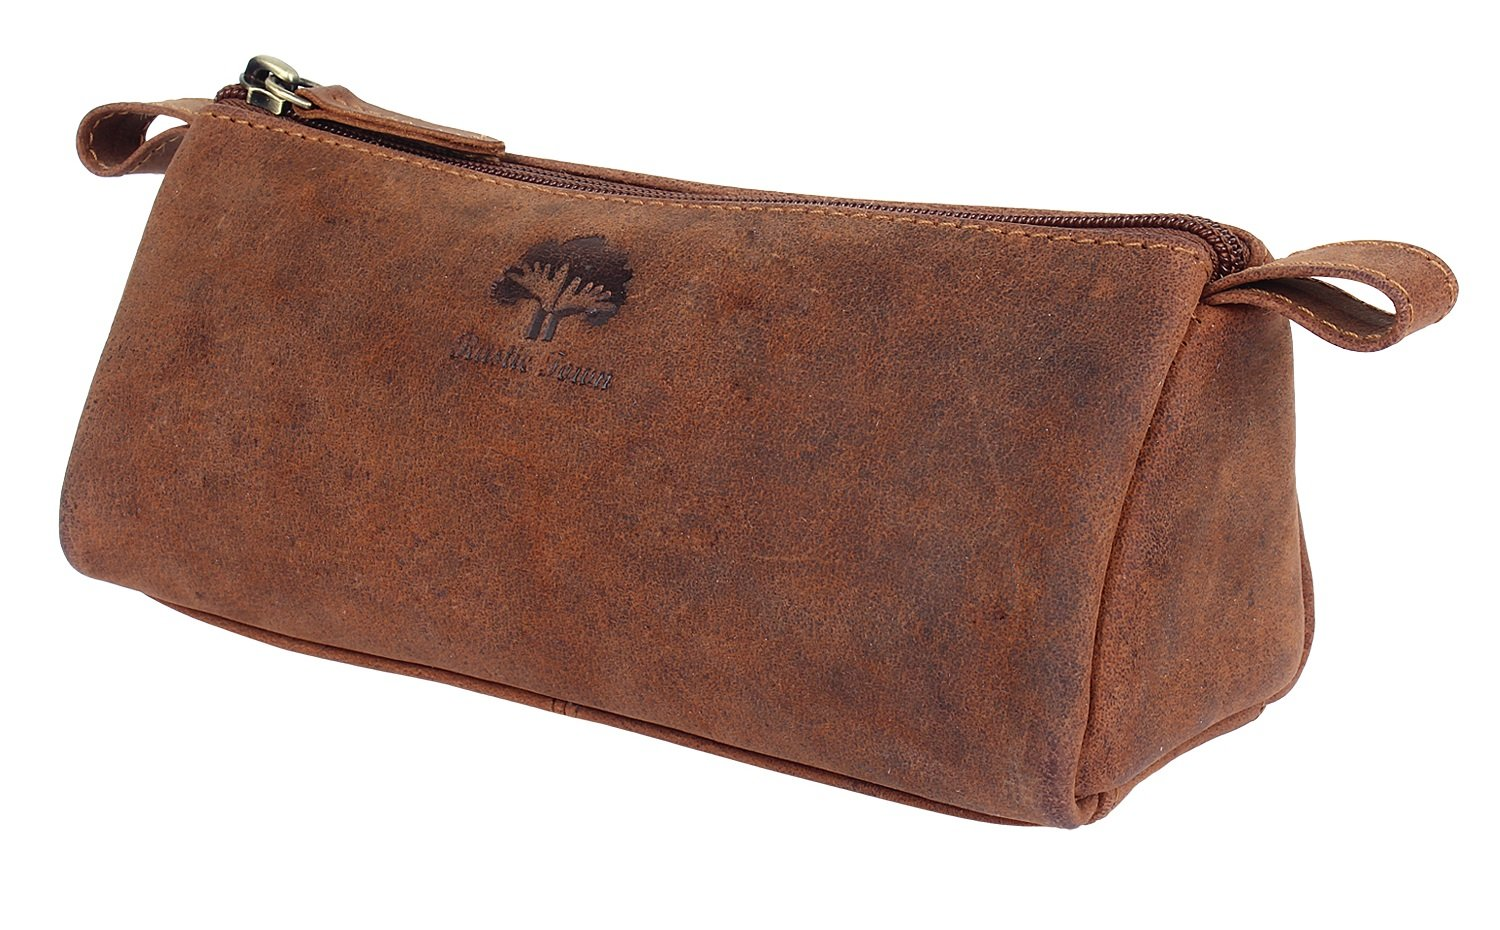 Leather Pencil Case - Zippered Pen Pouch for School, Work & Office by Rustic Town by RusticTown (Image #1)